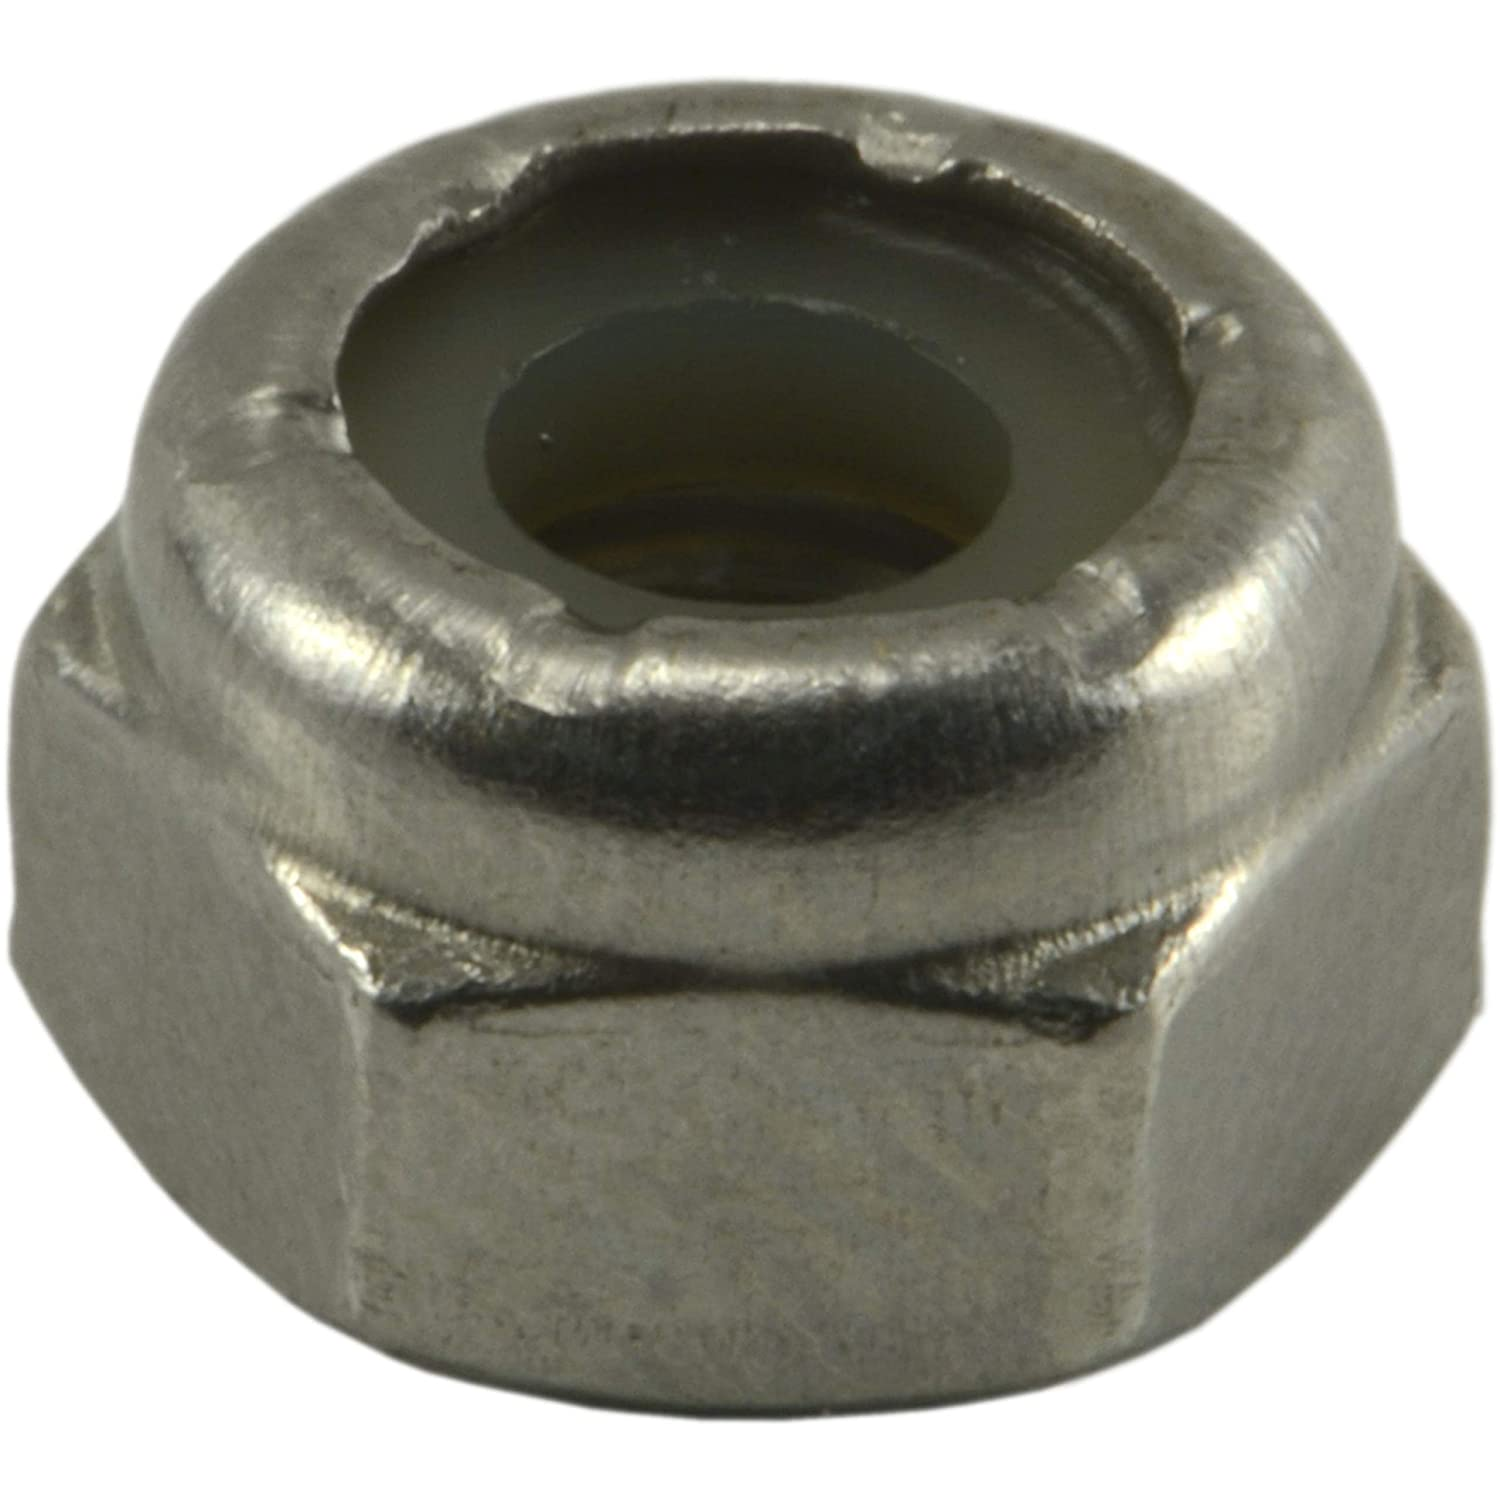 Hard-to-Find Fastener 014973191955 Coarse Nylon Insert Lock Nuts Piece-100 10-24